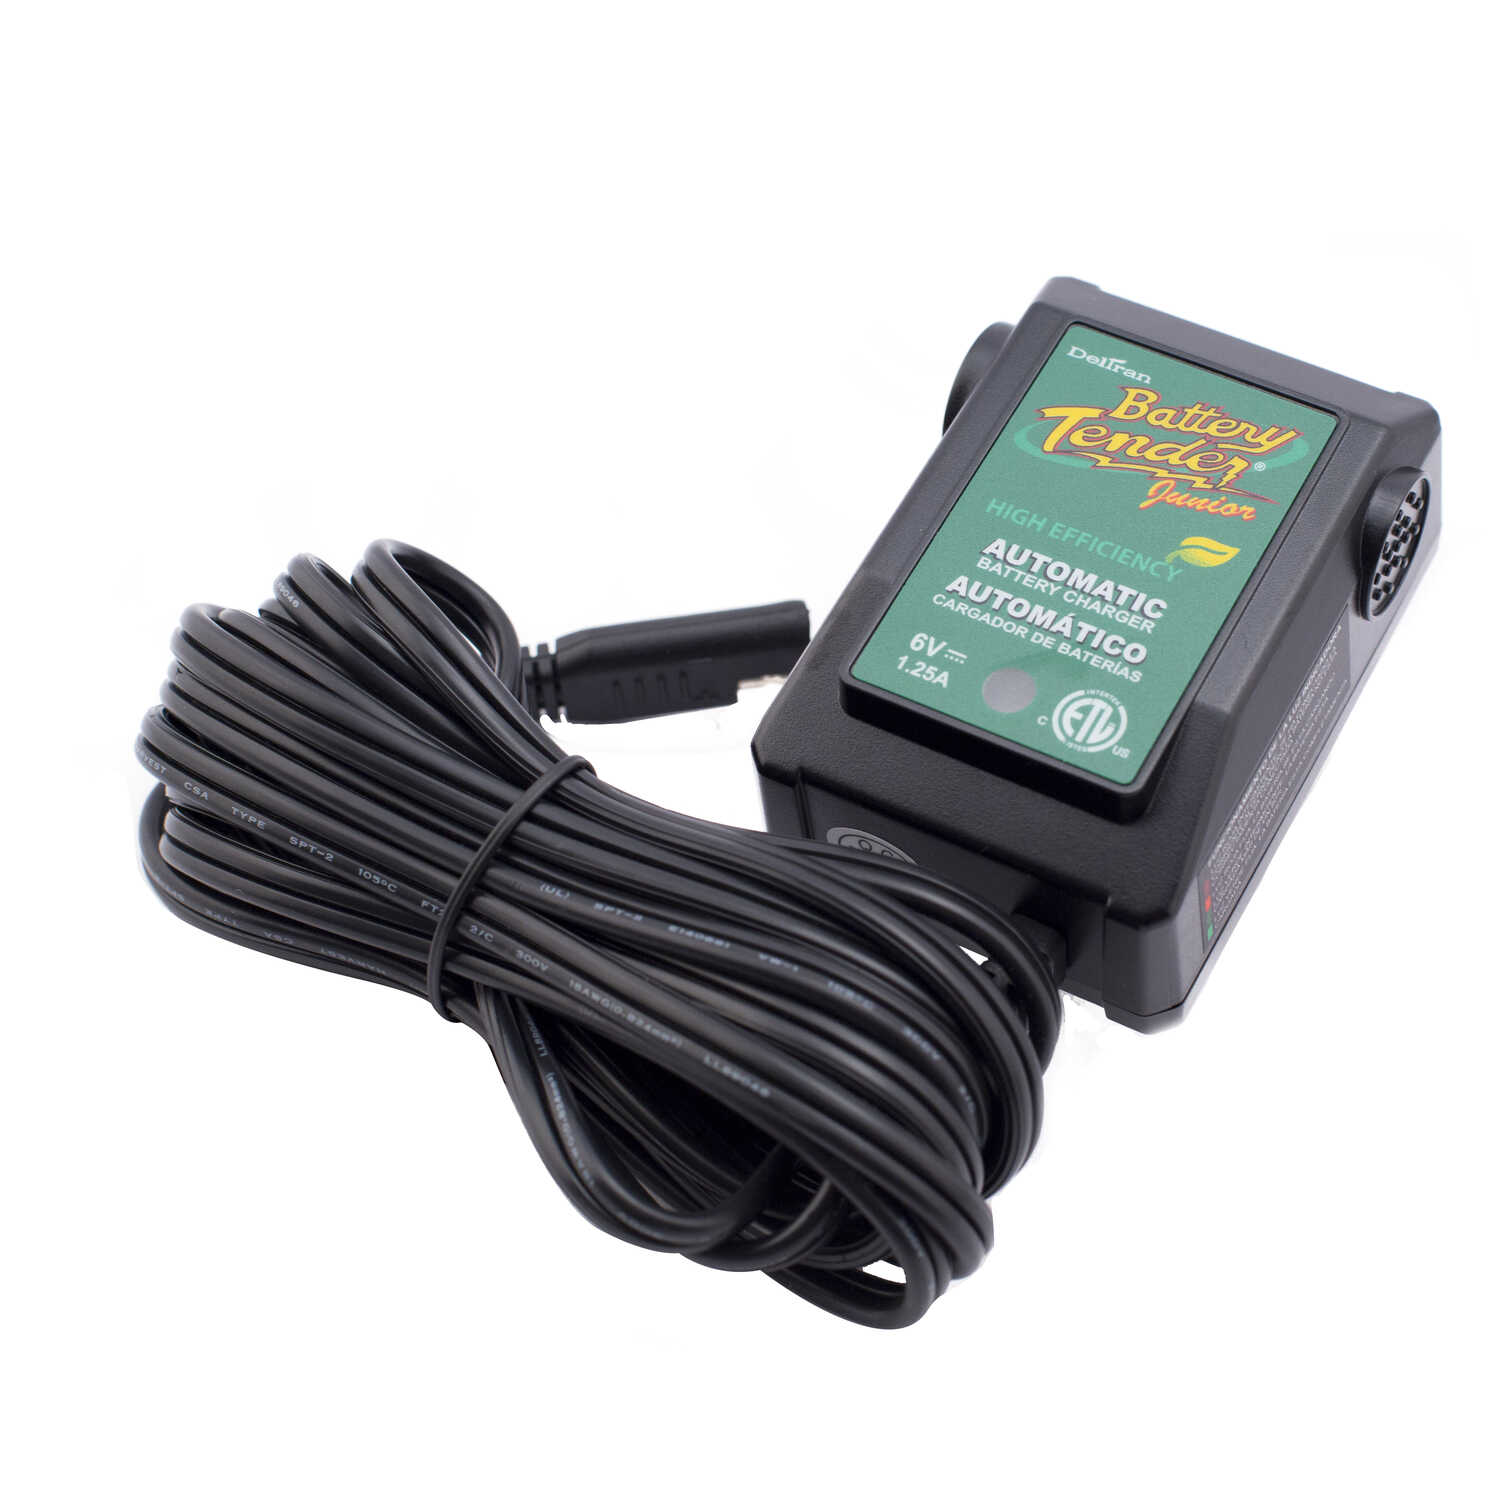 Battery Tender  Automatic  6 volt 1.25 amps Battery Charger